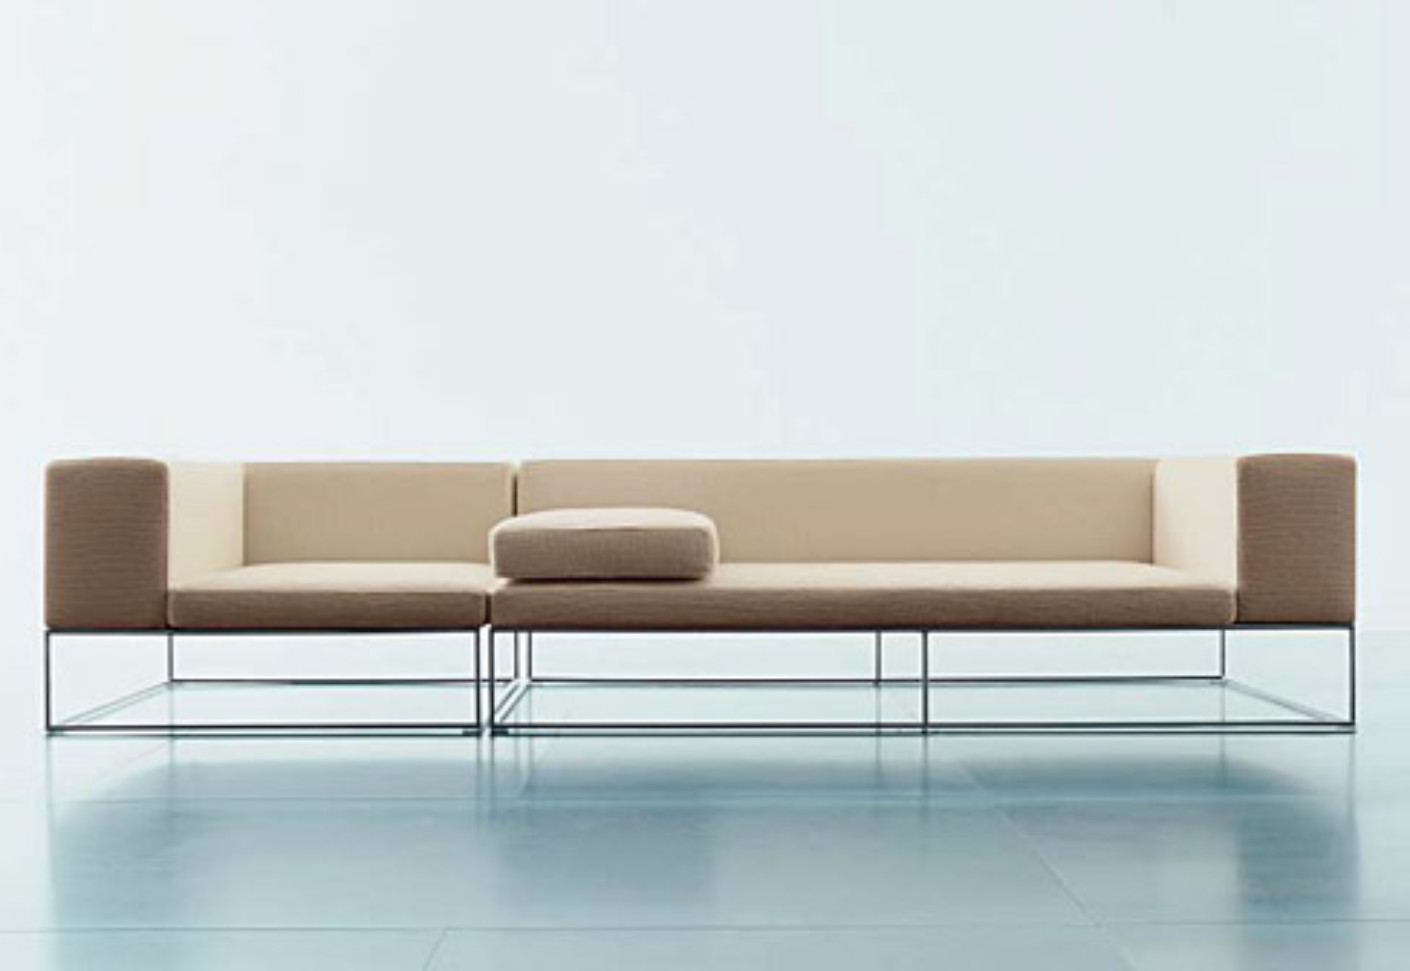 206 Le Sofa By Living Divani Stylepark